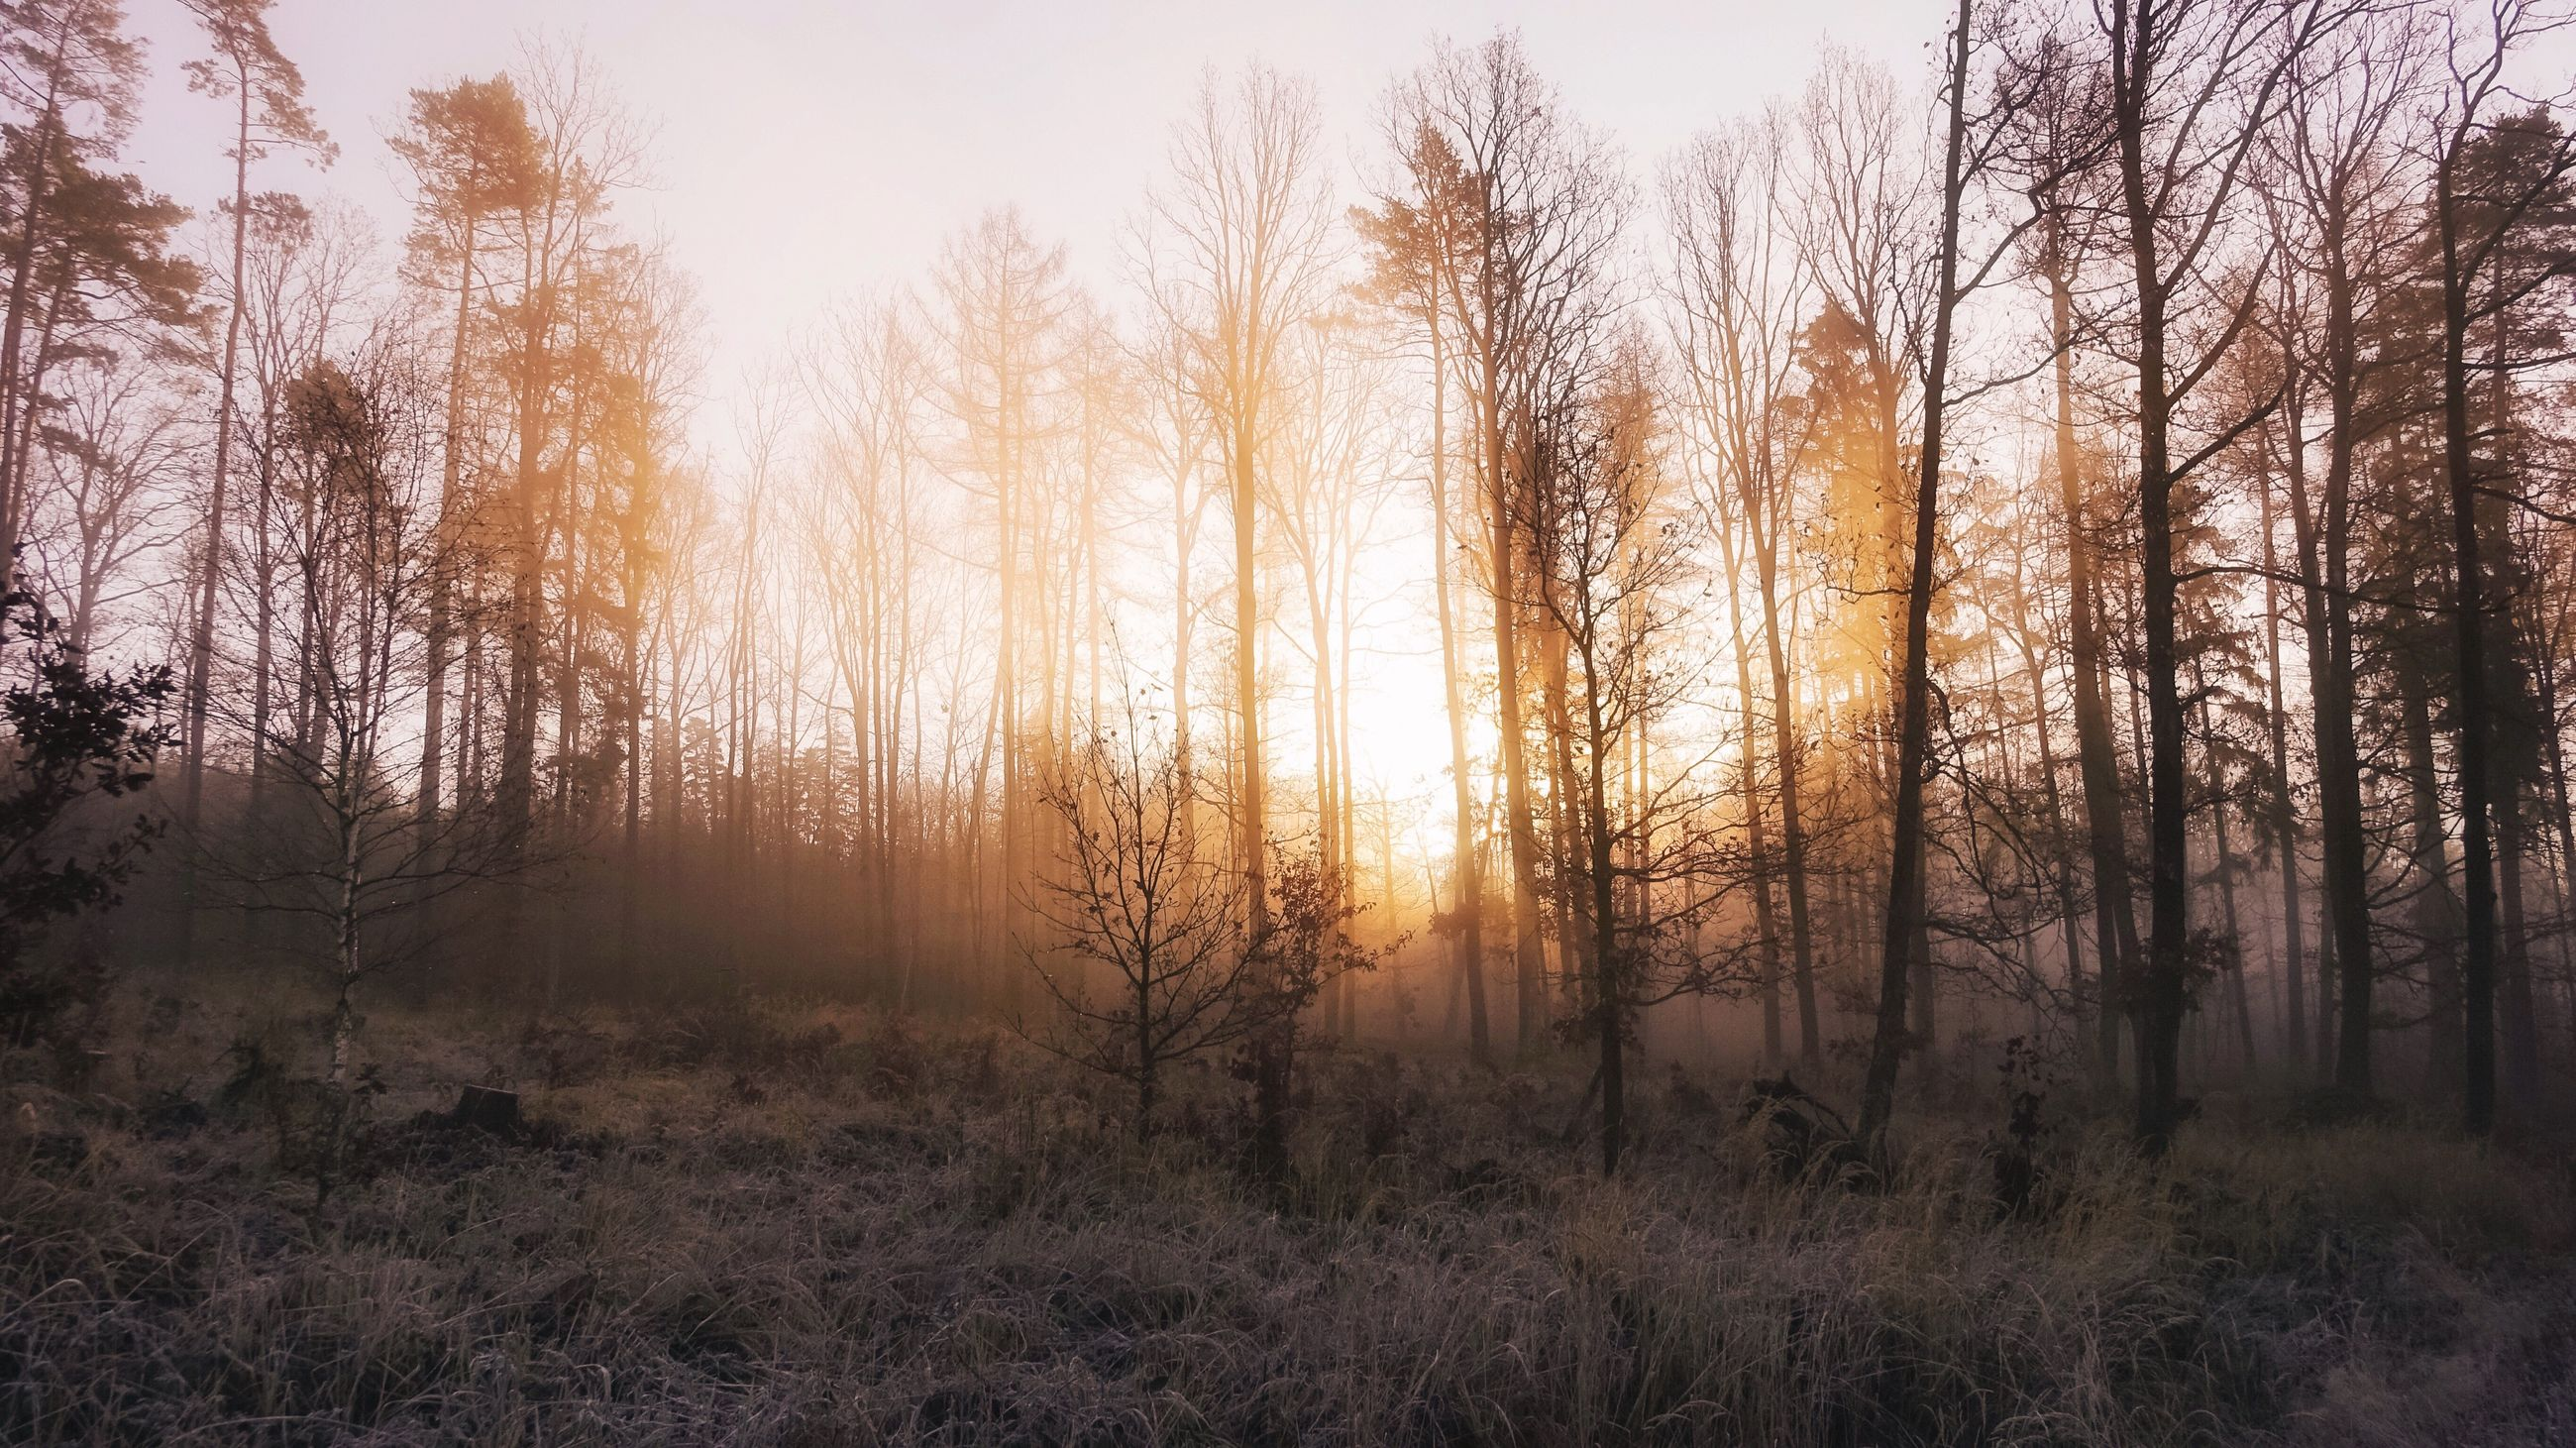 nature, sunset, tree, sky, non-urban scene, sunlight, landscape, forest, sun, no people, beauty in nature, outdoors, backgrounds, day